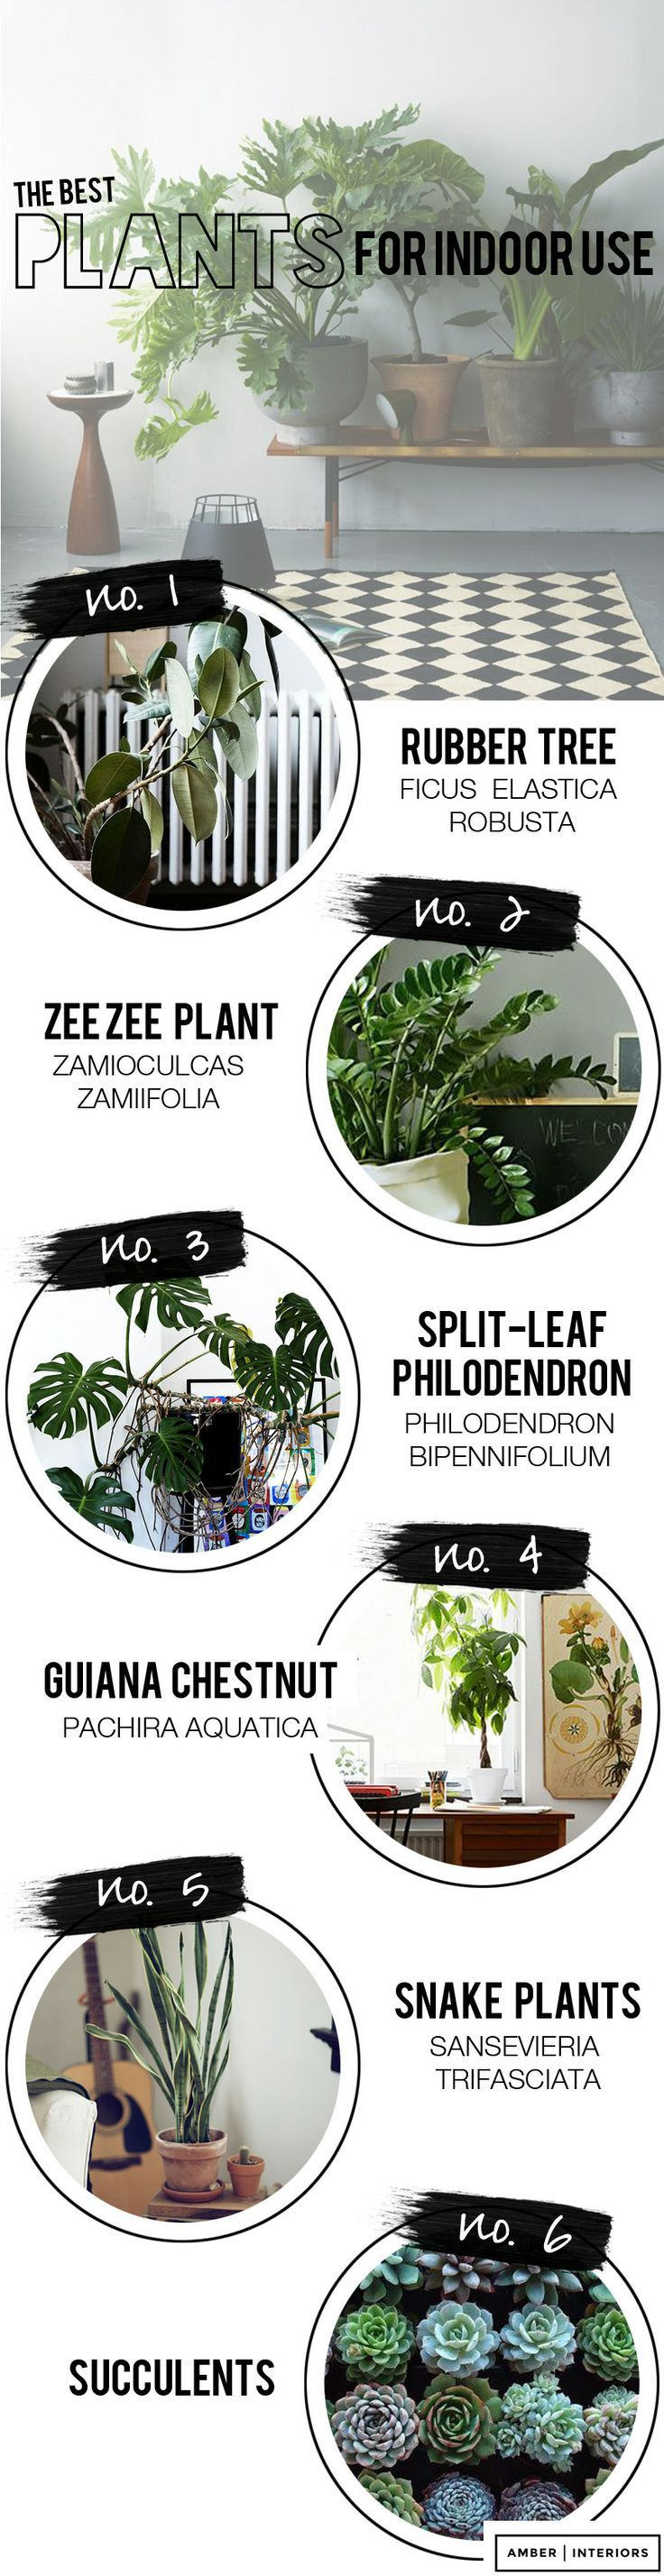 6 best indoor house plants